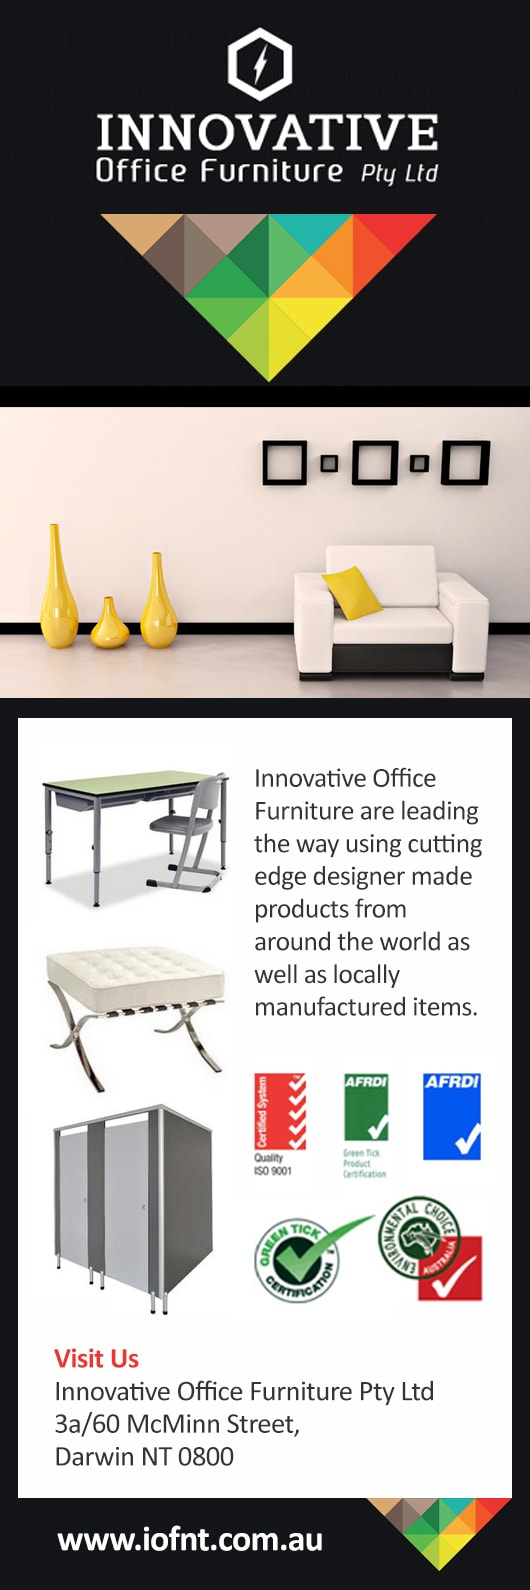 Innovative Classroom Supplies : Innovative office furniture school supplies